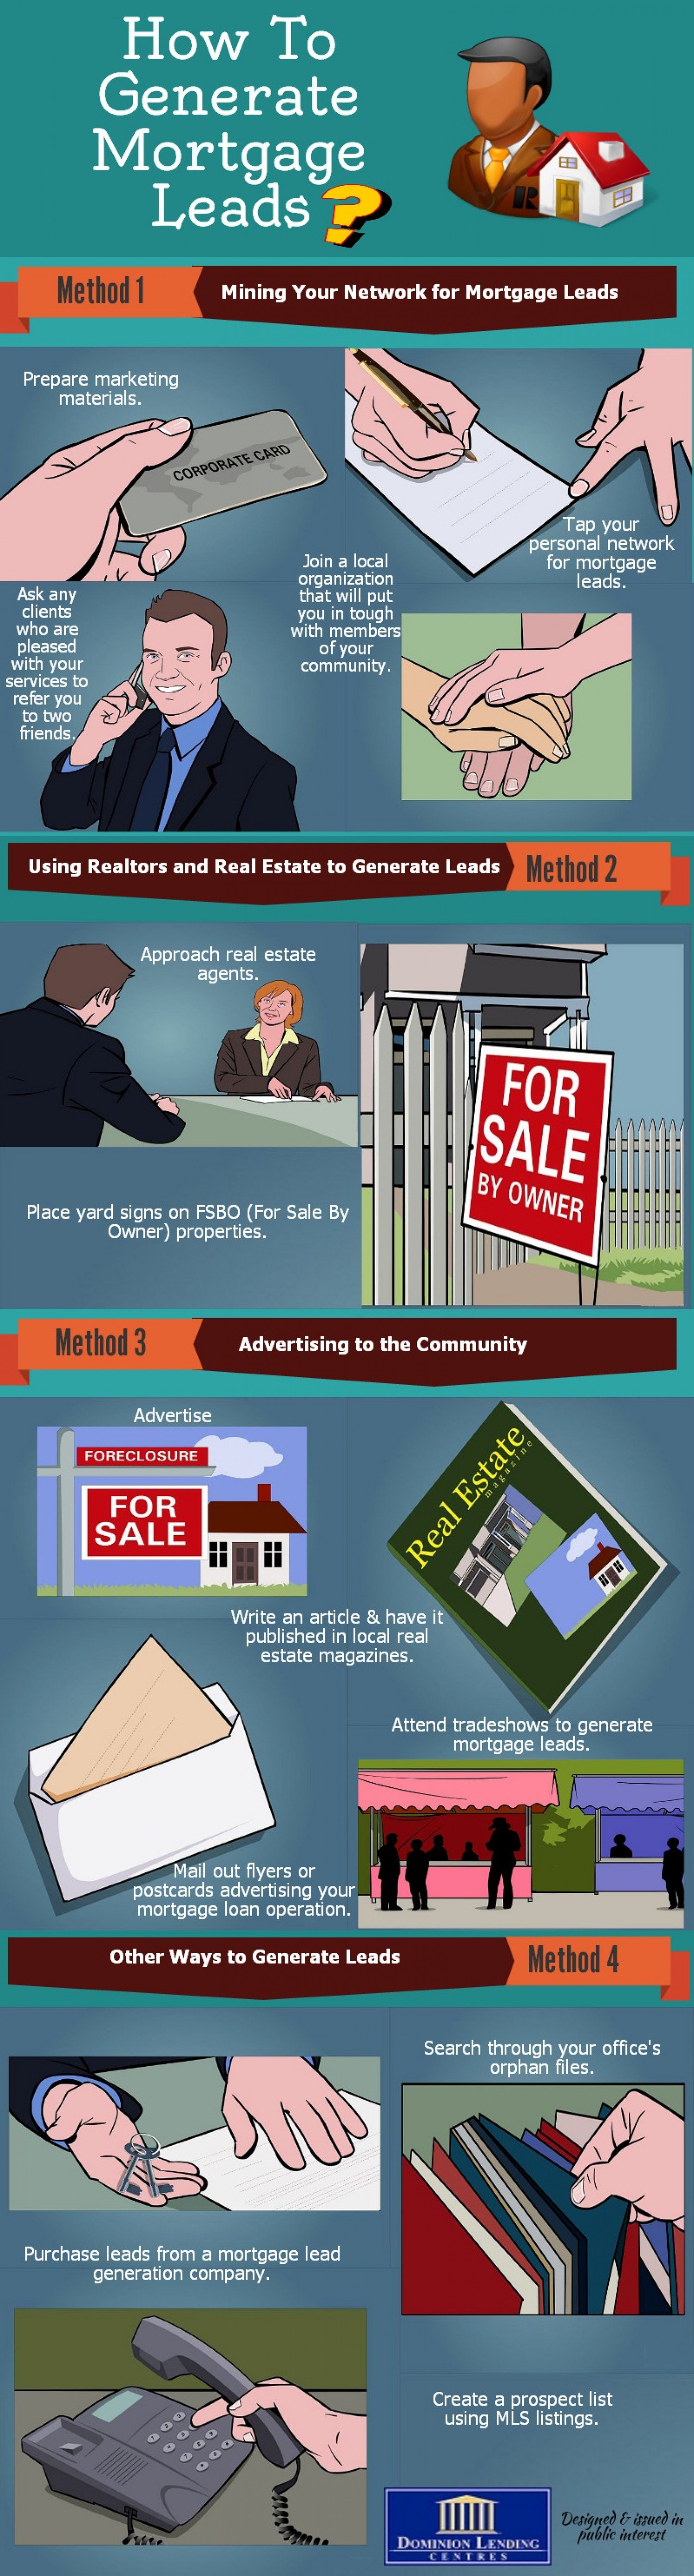 How to Generate Mortgage Leads Infographic